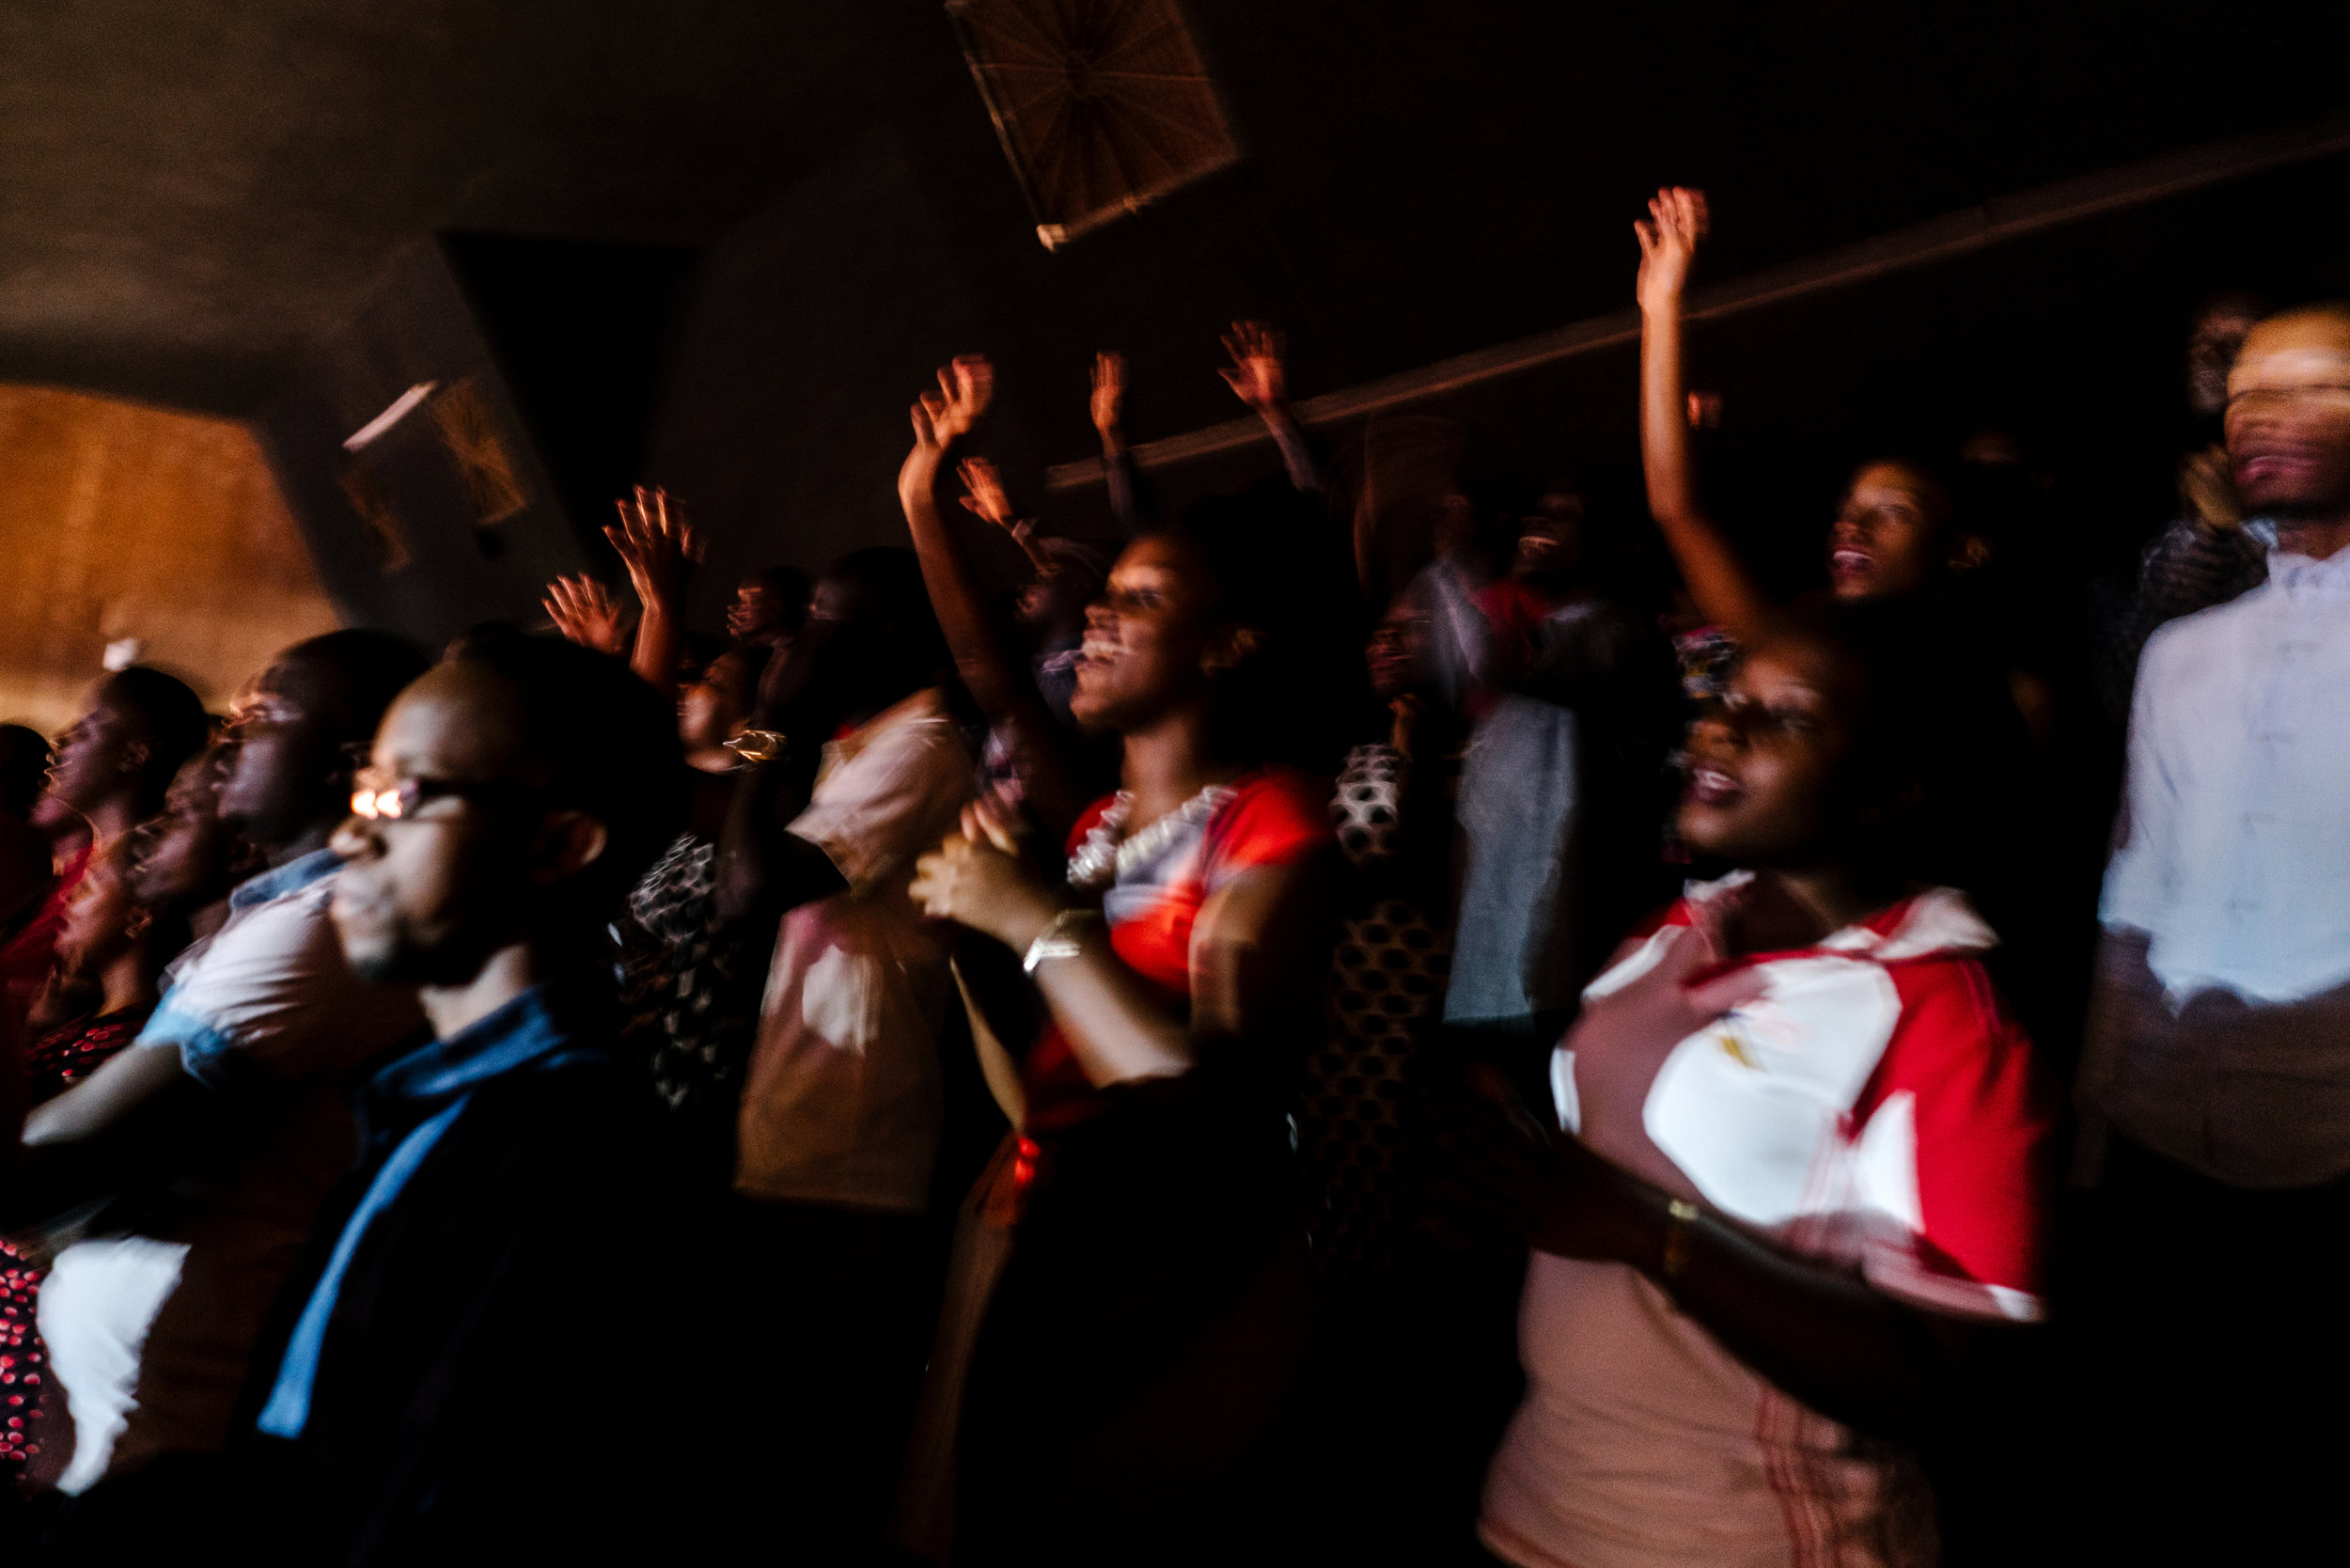 Worshippers sing at a Sunday service at Watoto church, an English speaking Pentecostal church, in downtown Kampala. Activists say Watoto, led by American pastor Gary Skinner,  has been instrumental in spreading homophobia, including through hosting American evangelical Scott Lively.